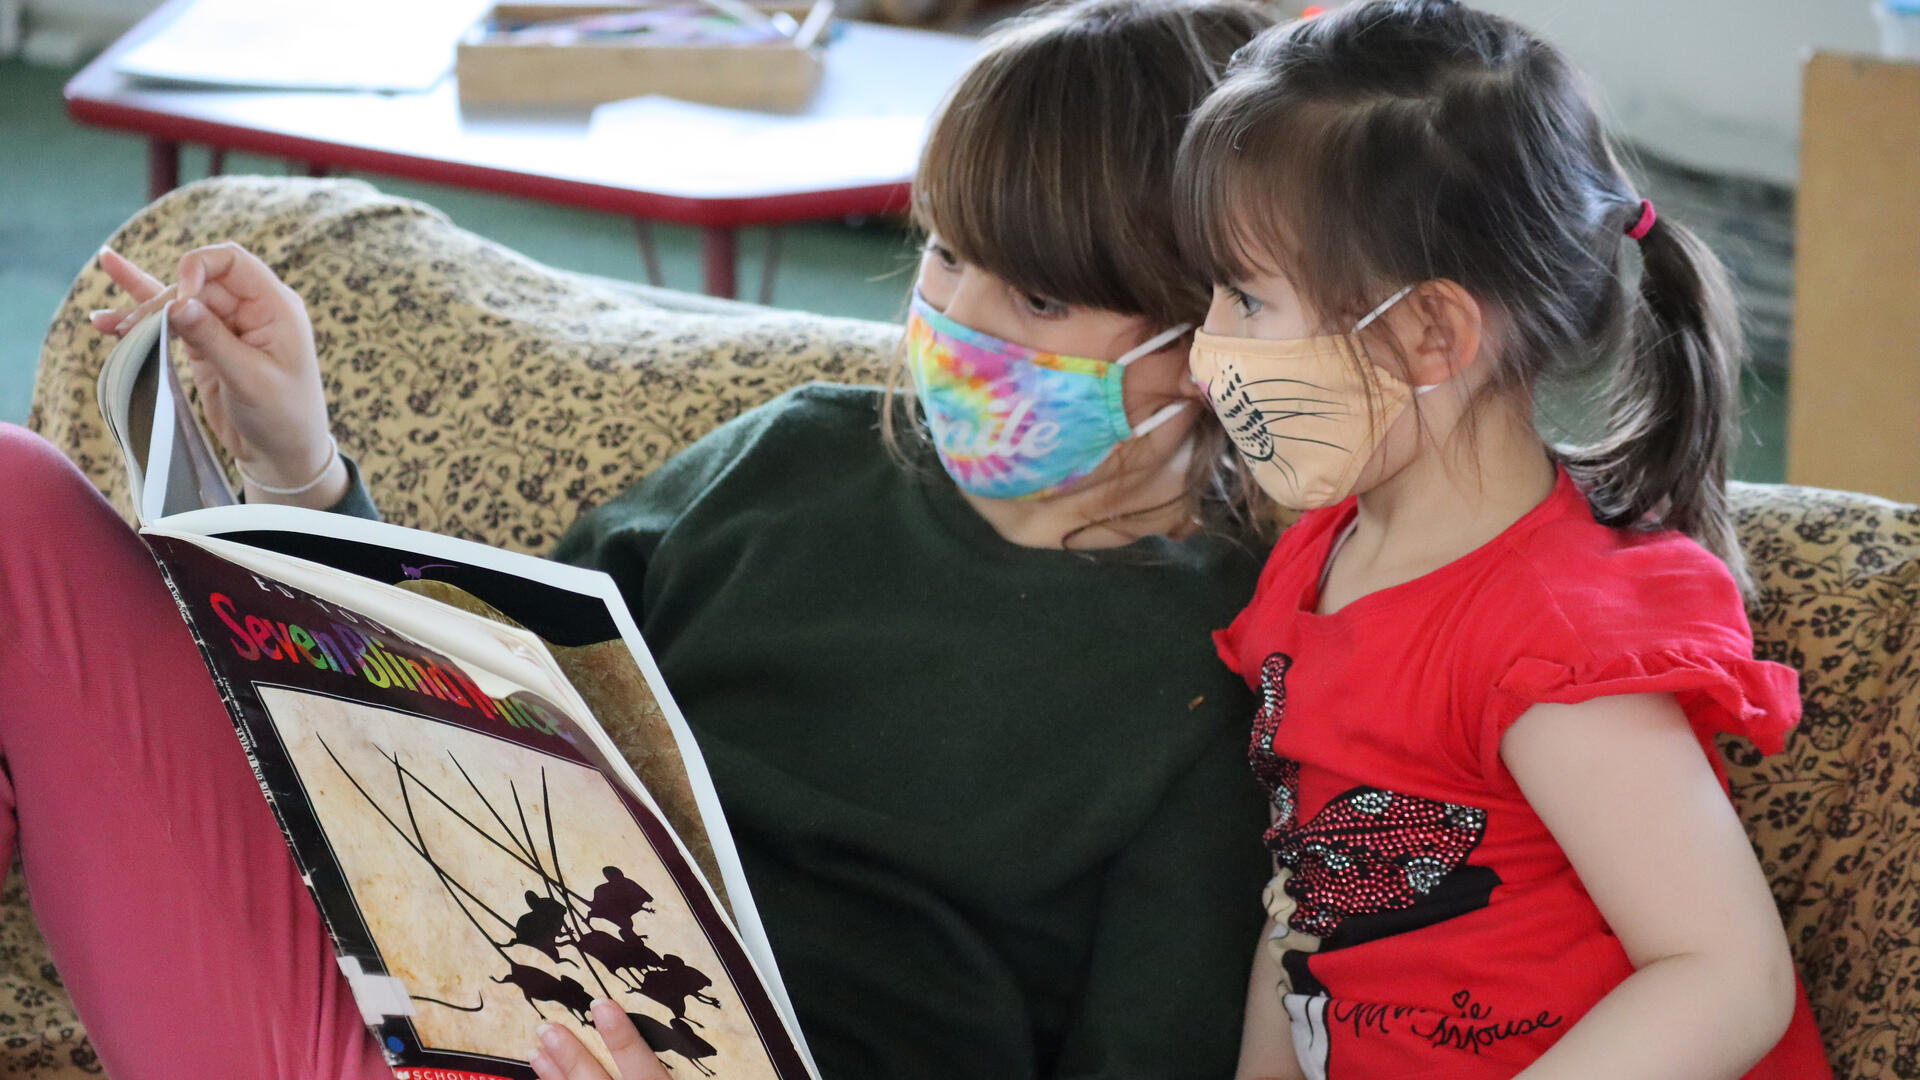 An older child in a green sweatshirt and tie-dye mask reads a picture book to a younger child in a red T-shirt and tiger mask as they sit on a small sofa